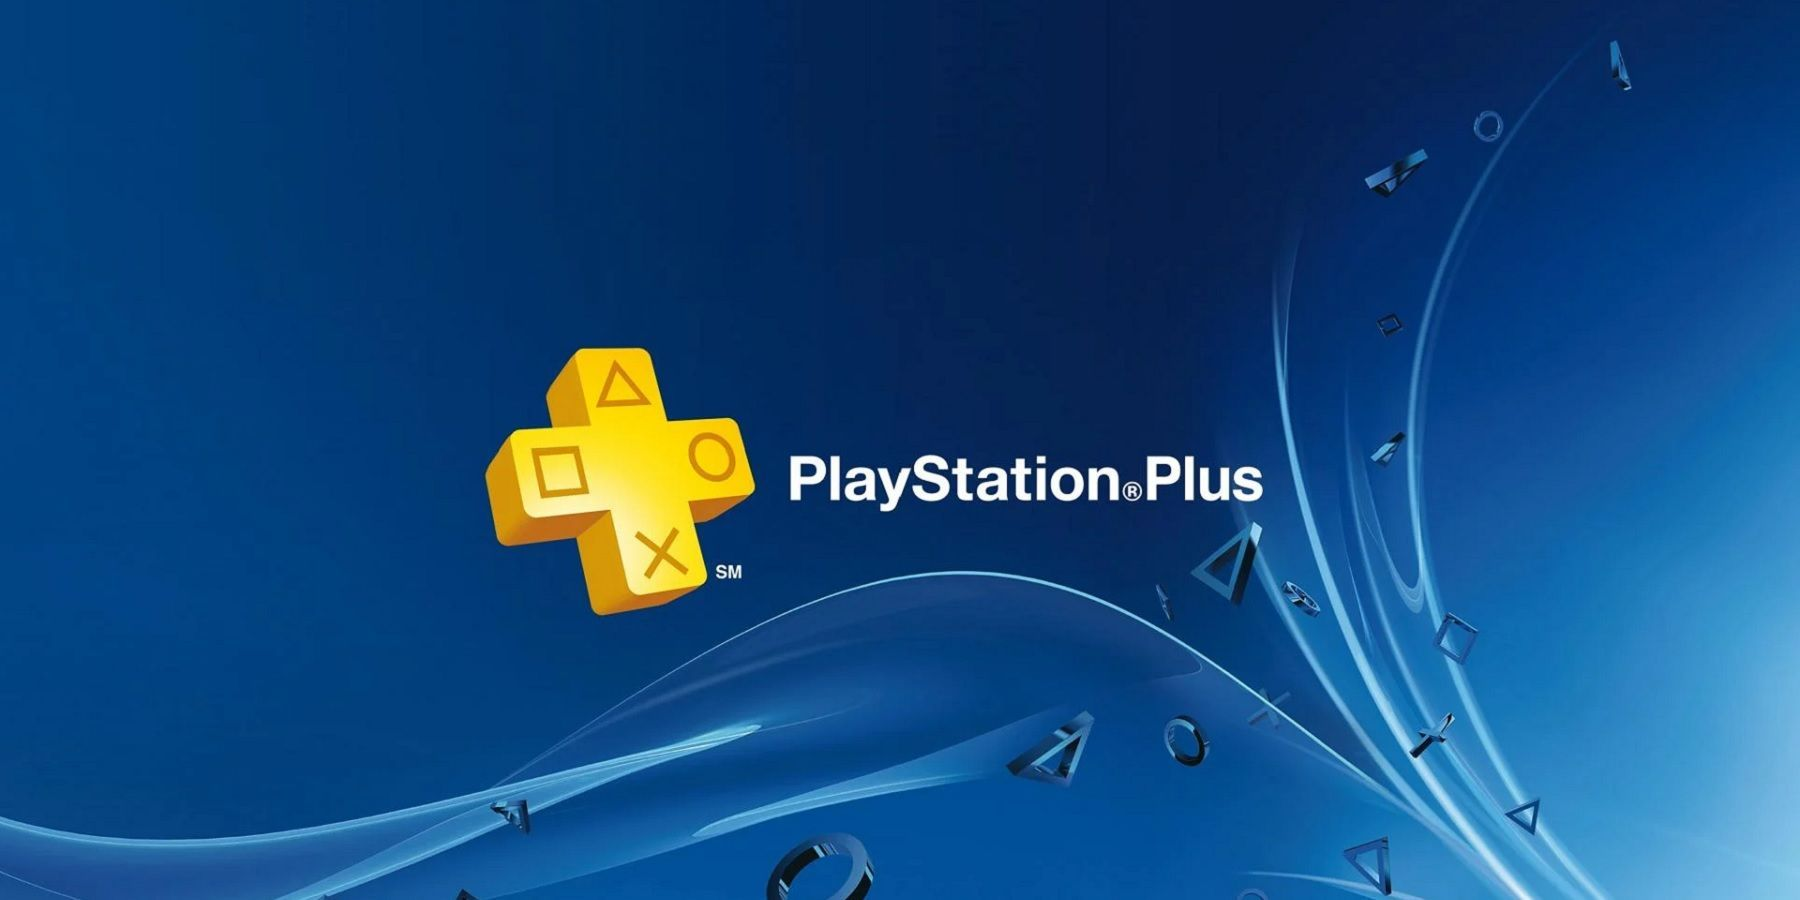 PlayStation Plus subscribers get Hell Let Loose, Mortal Kombat X in October